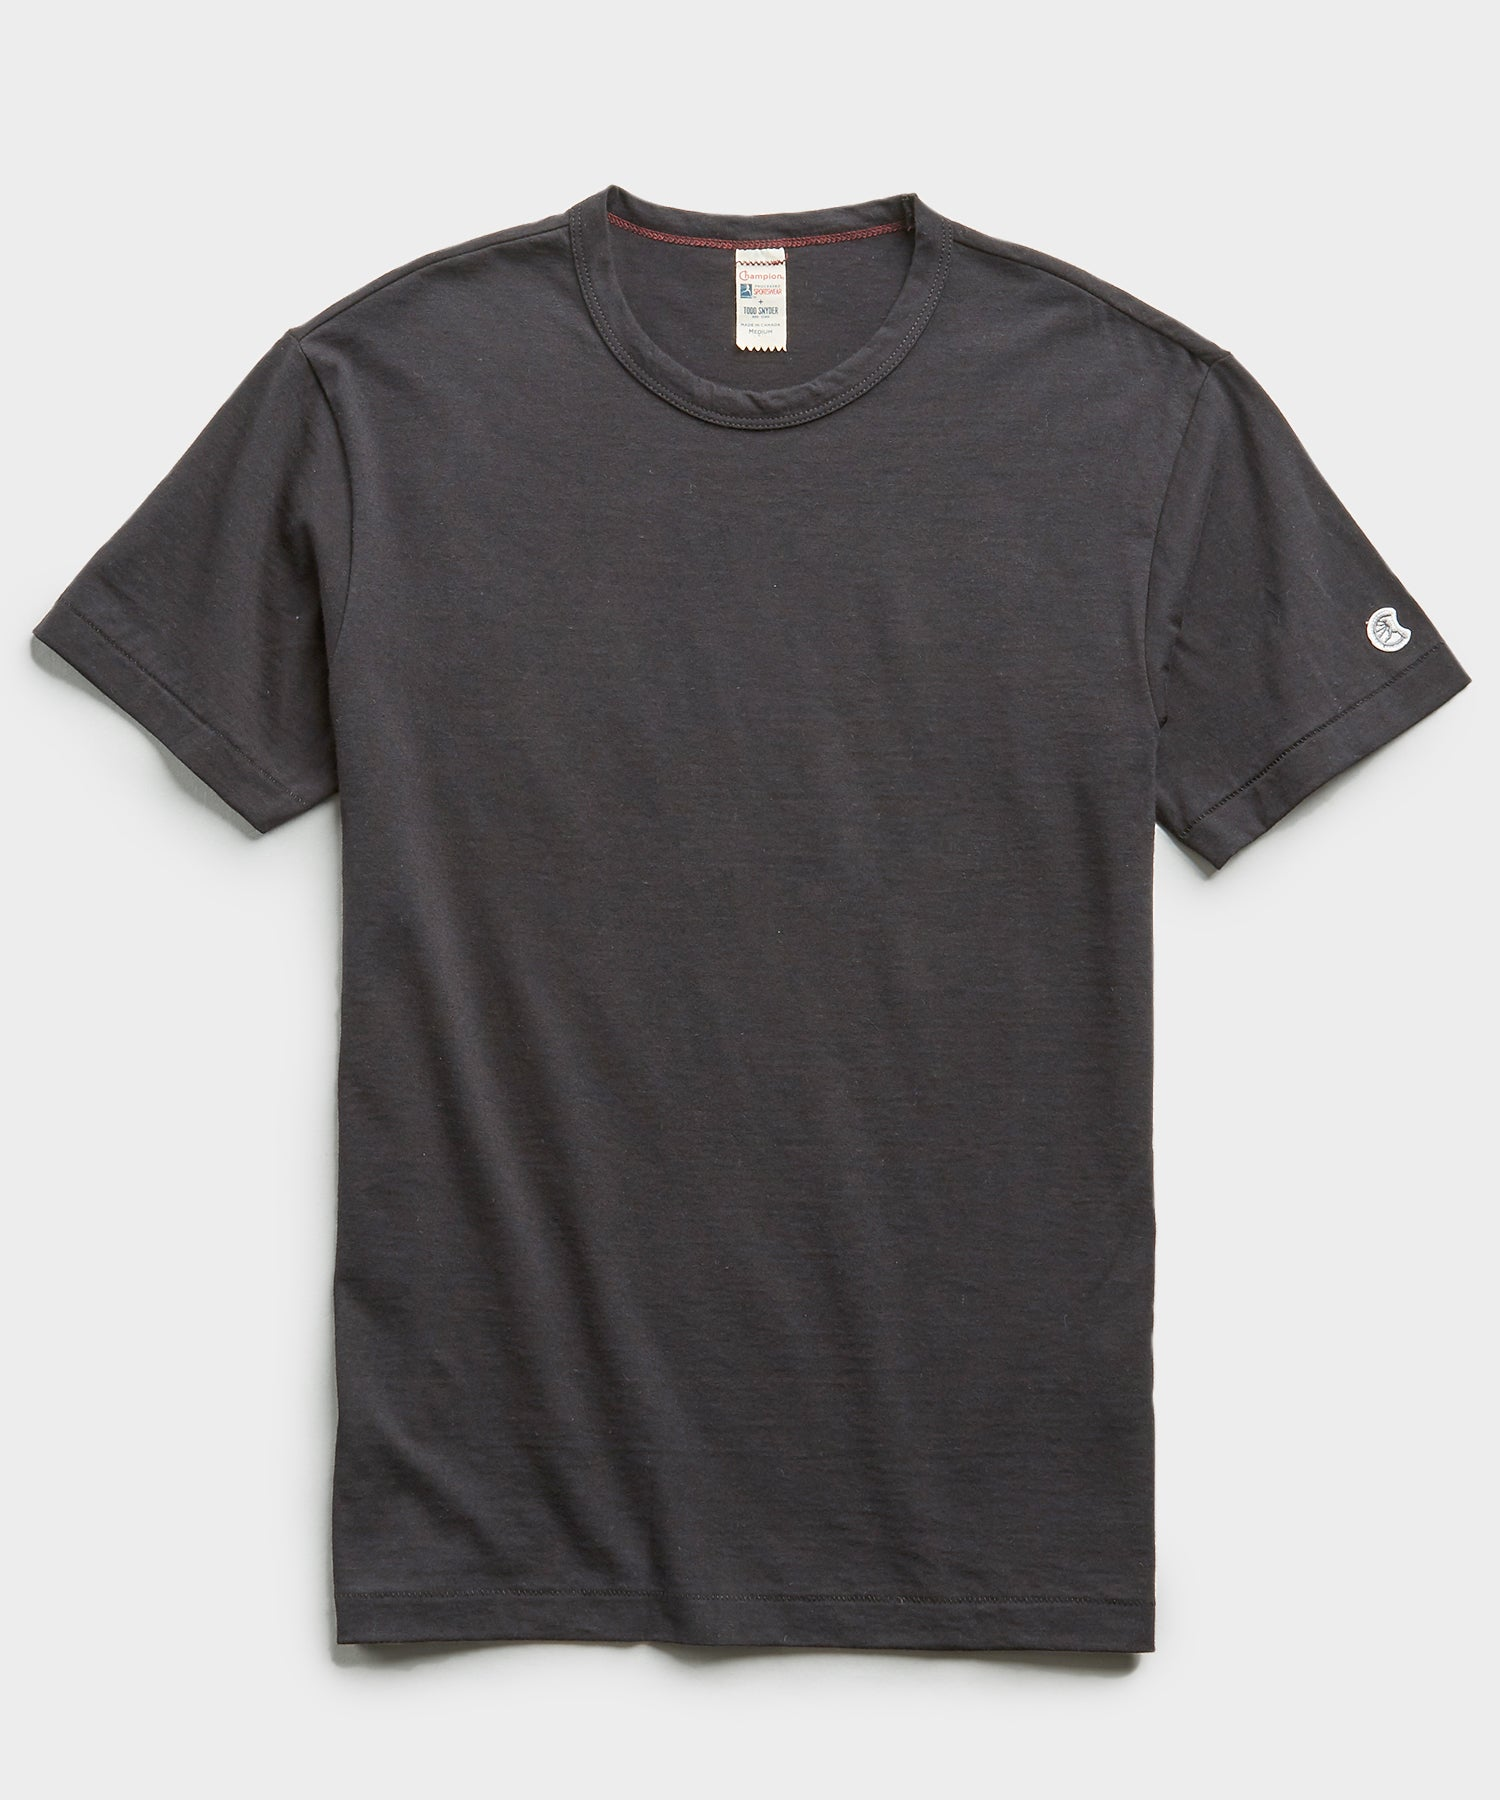 Champion Basic Jersey Tee in Asphalt